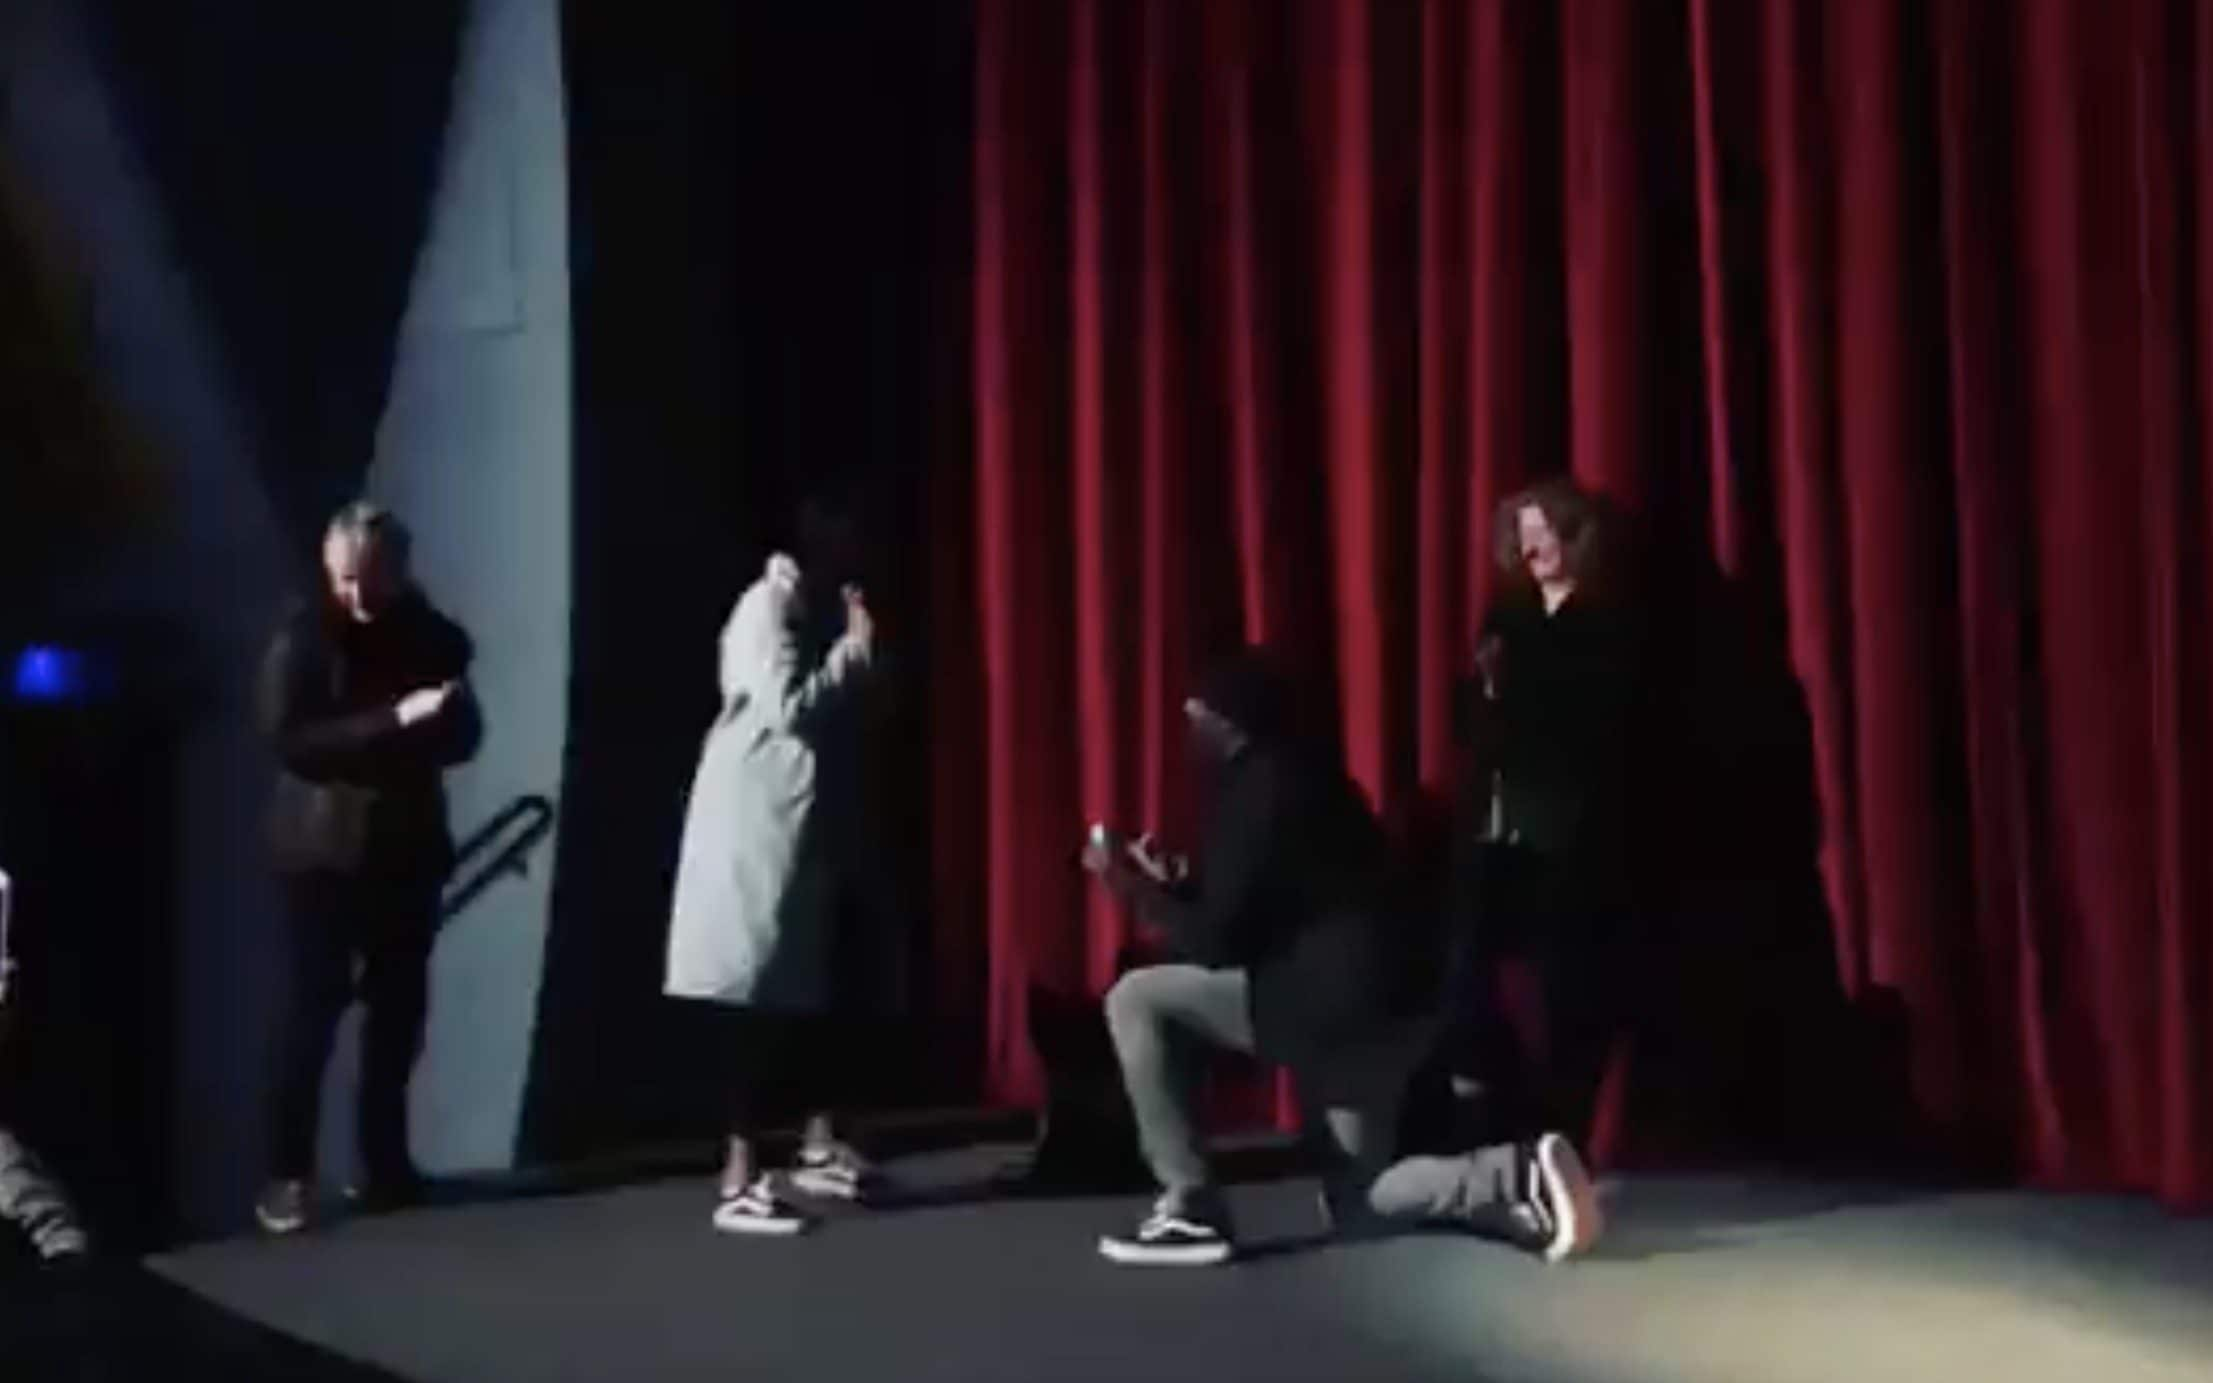 Idris Elba down on one knee, proposing to his girlfriend Sabrina Dhowre on the stage of the Rio cinema, in Dalston